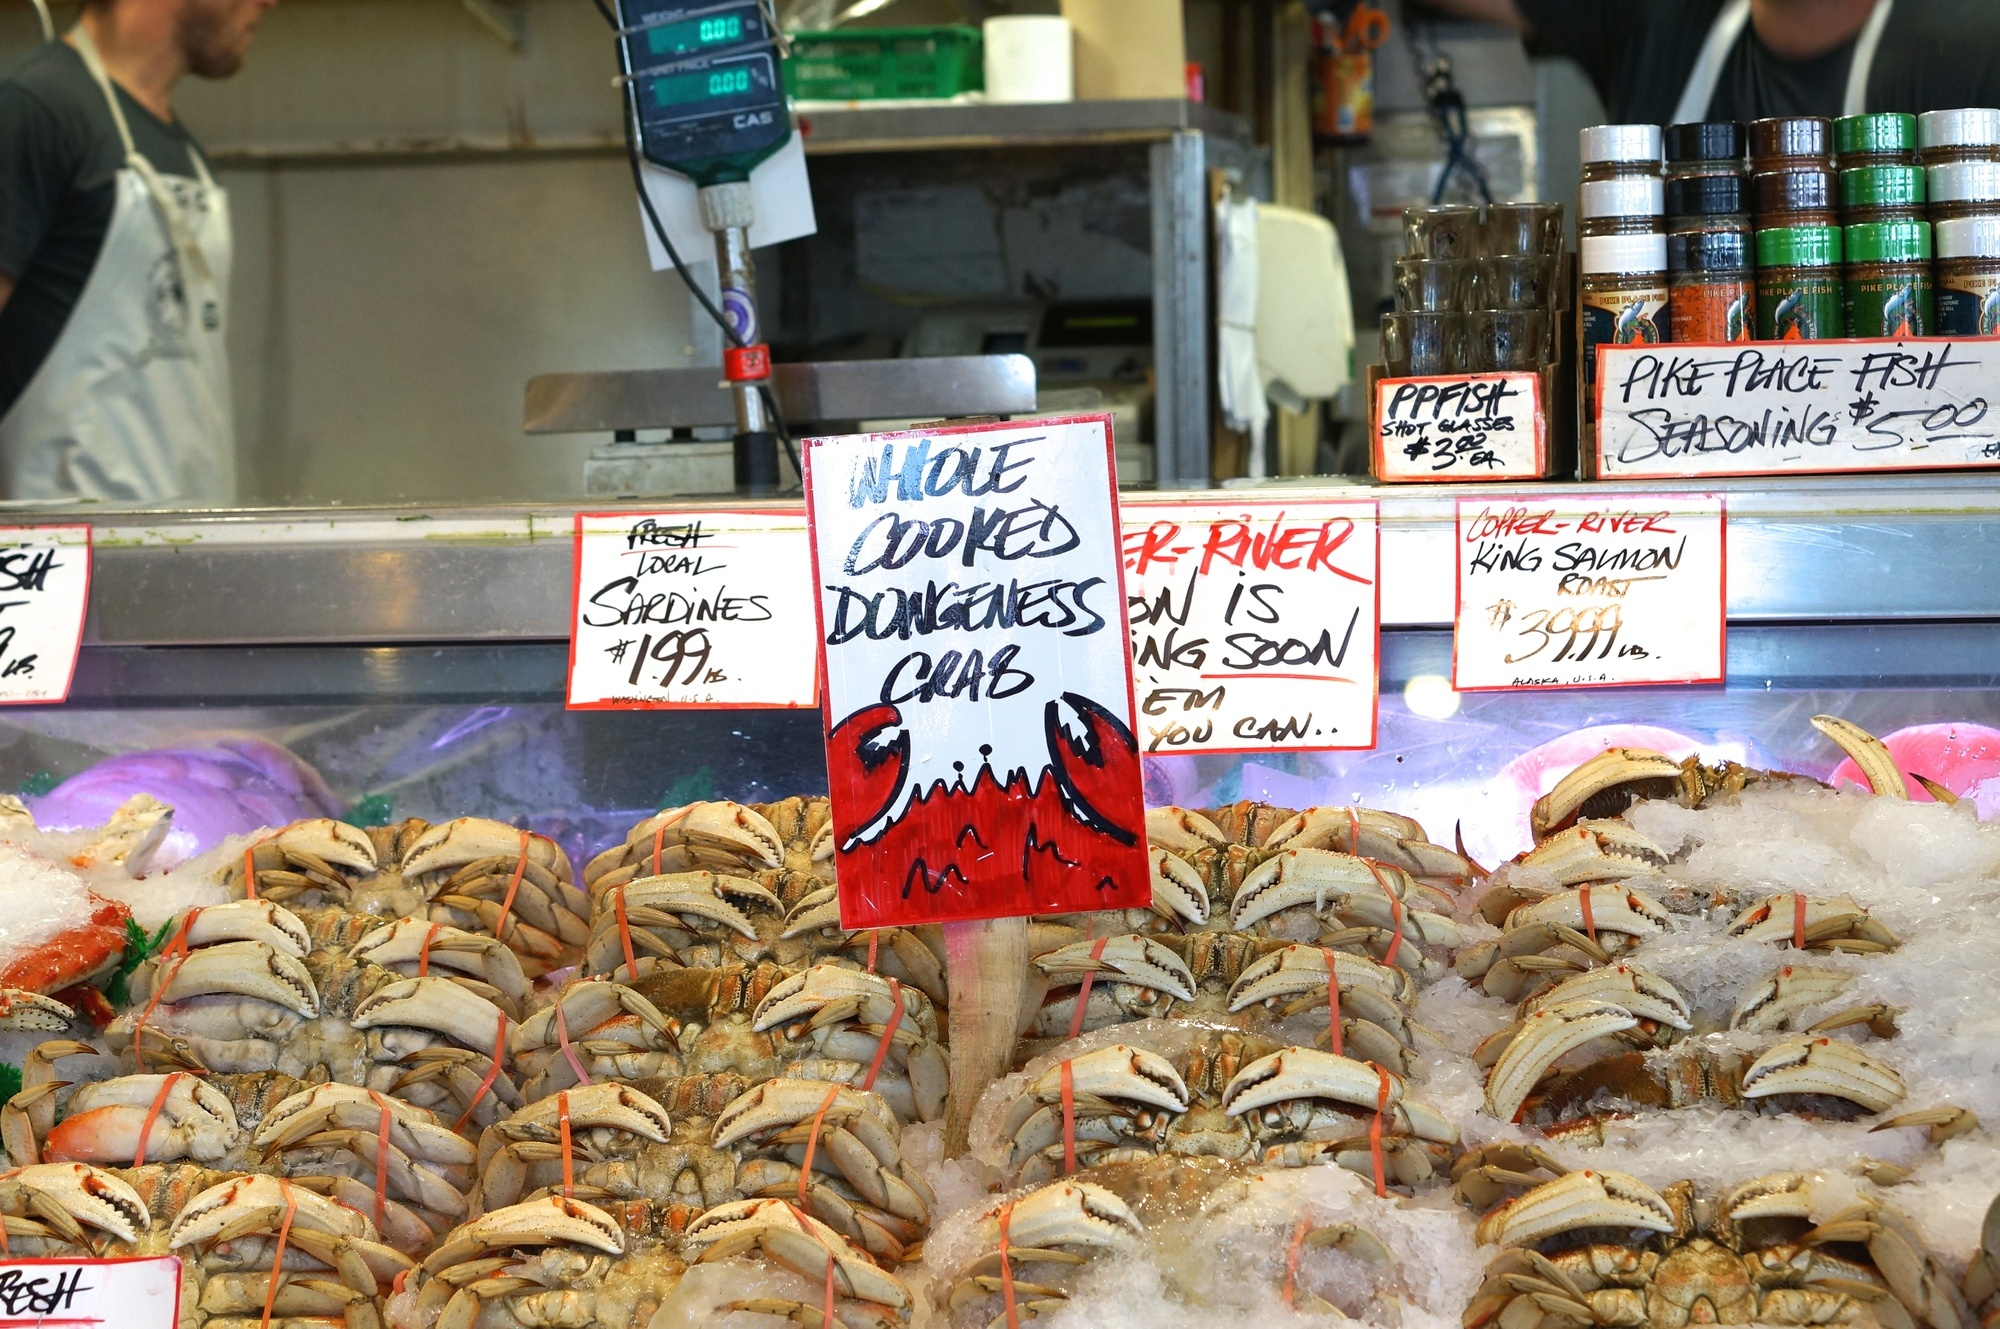 Sweet whole dungeness crabs pike place market